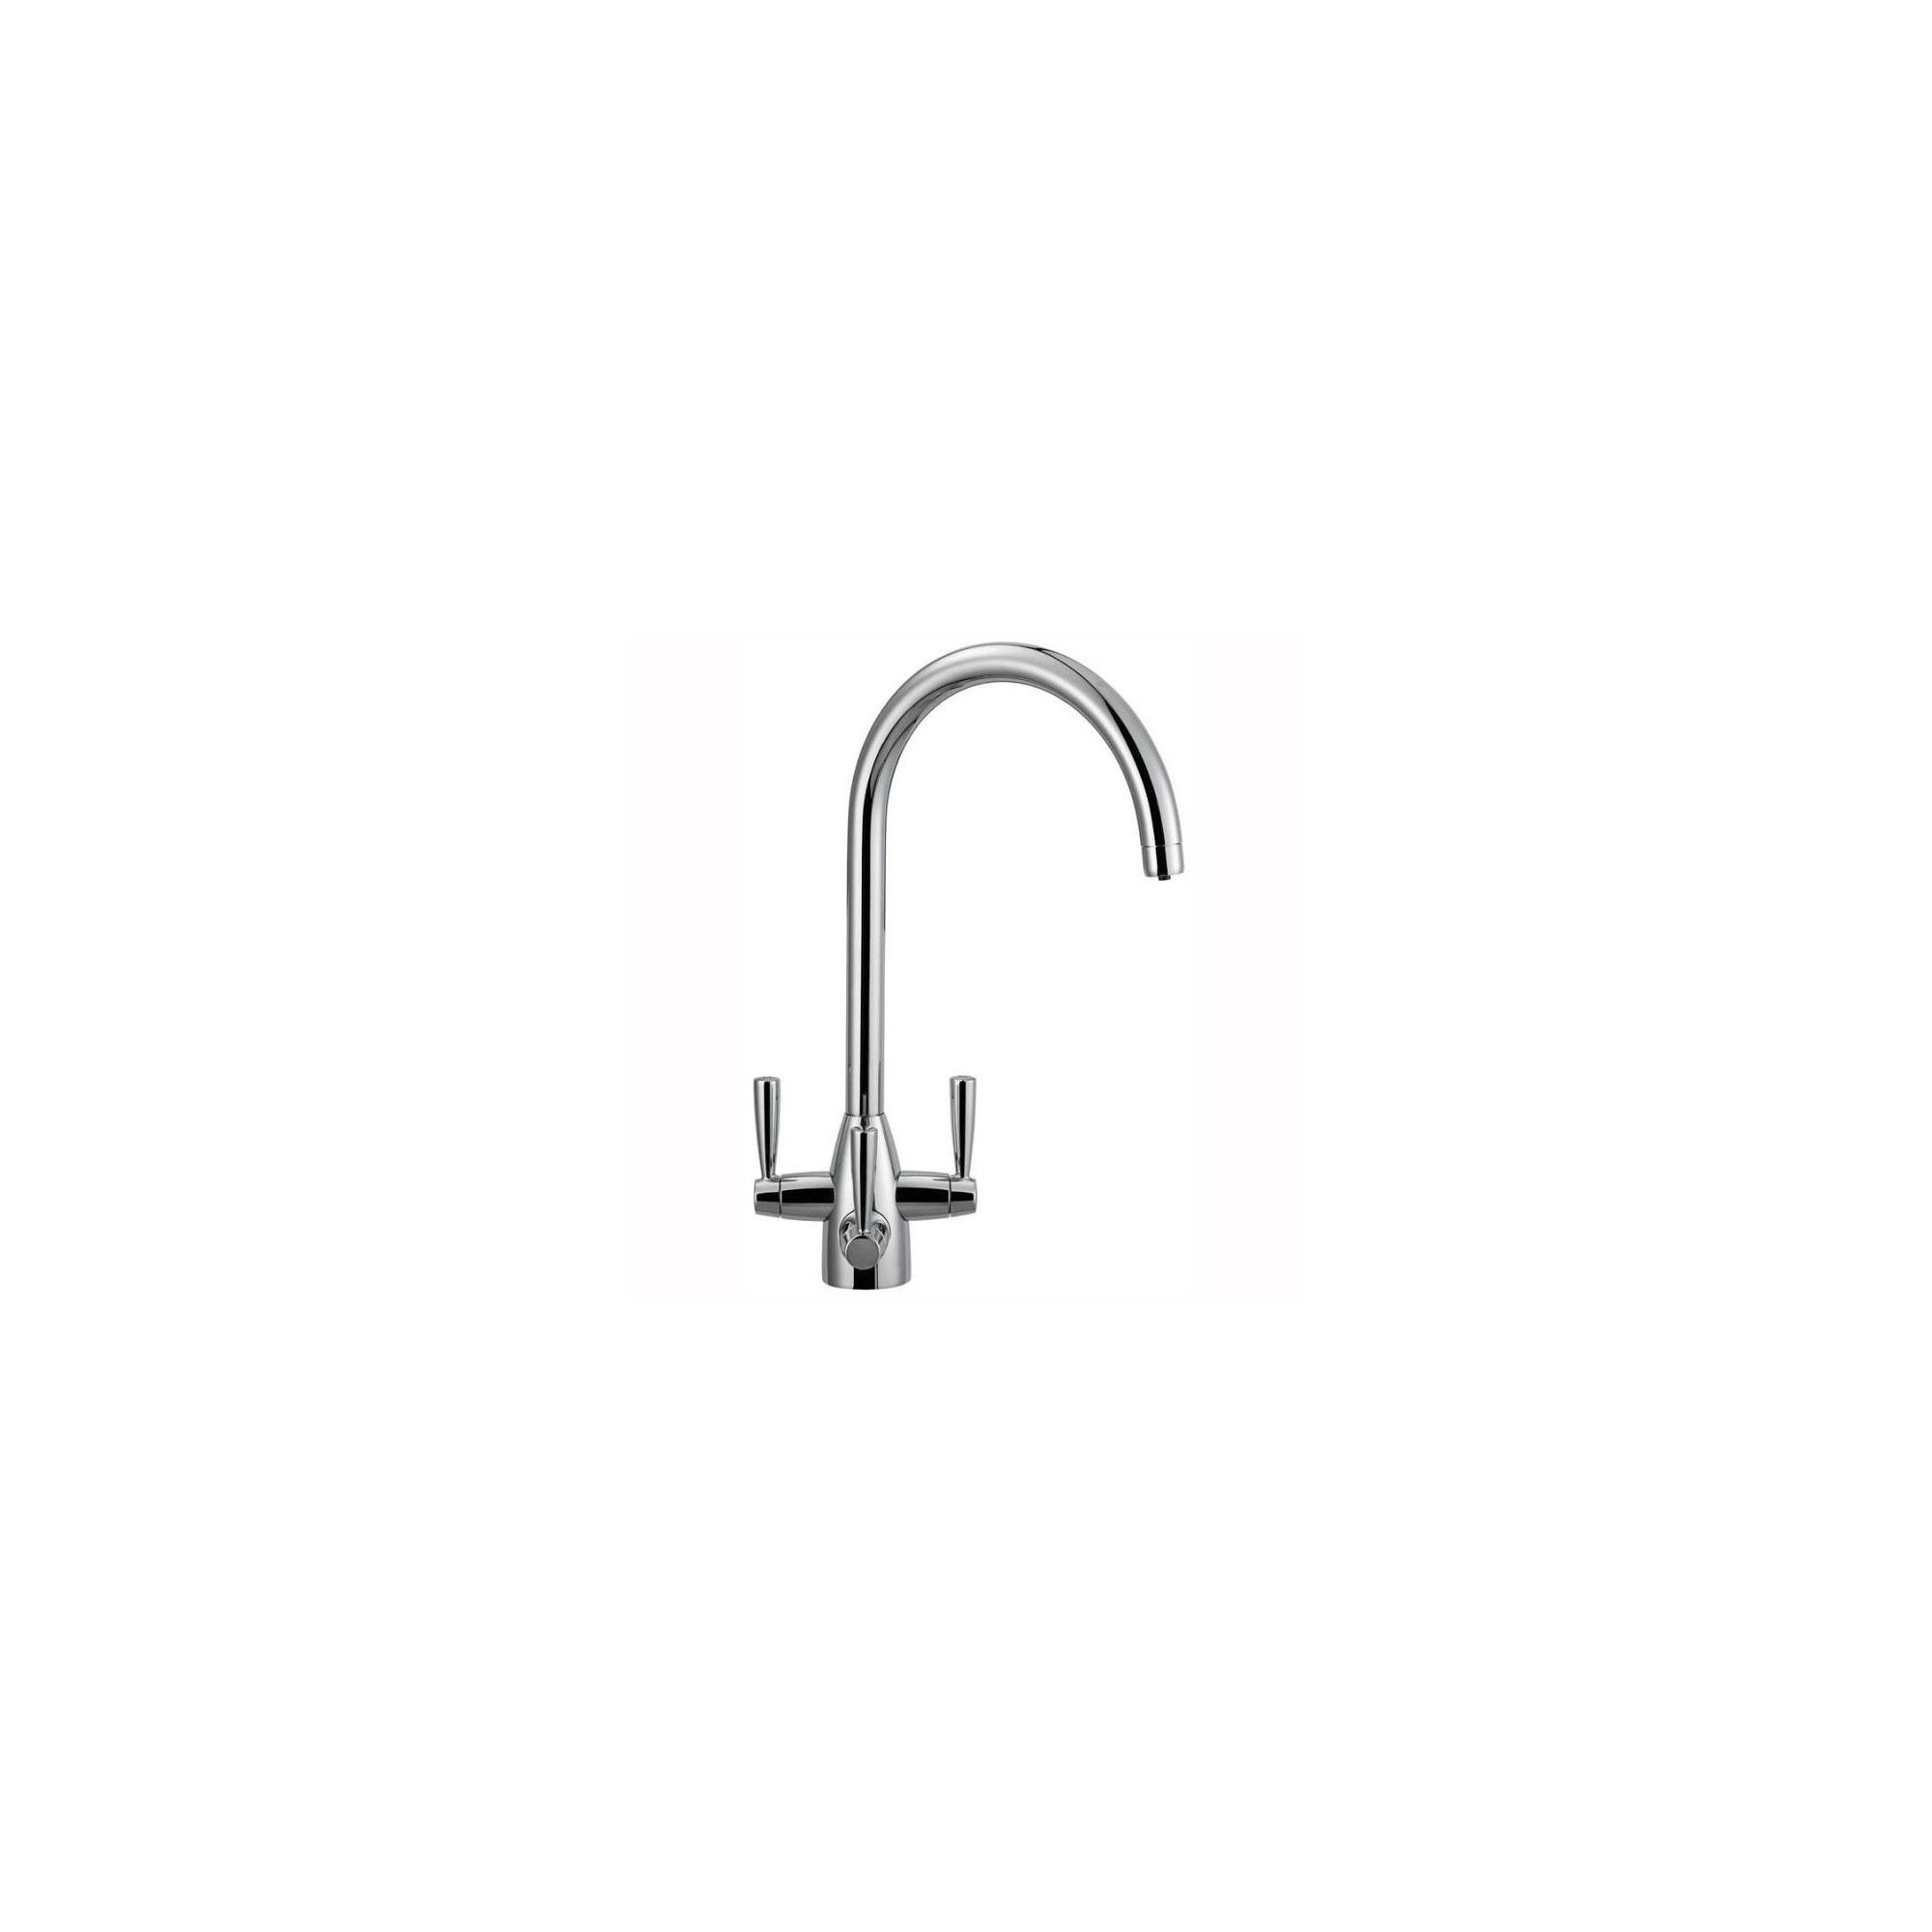 Franke Doric Filterflow Tap - Chrome at Tesco Direct